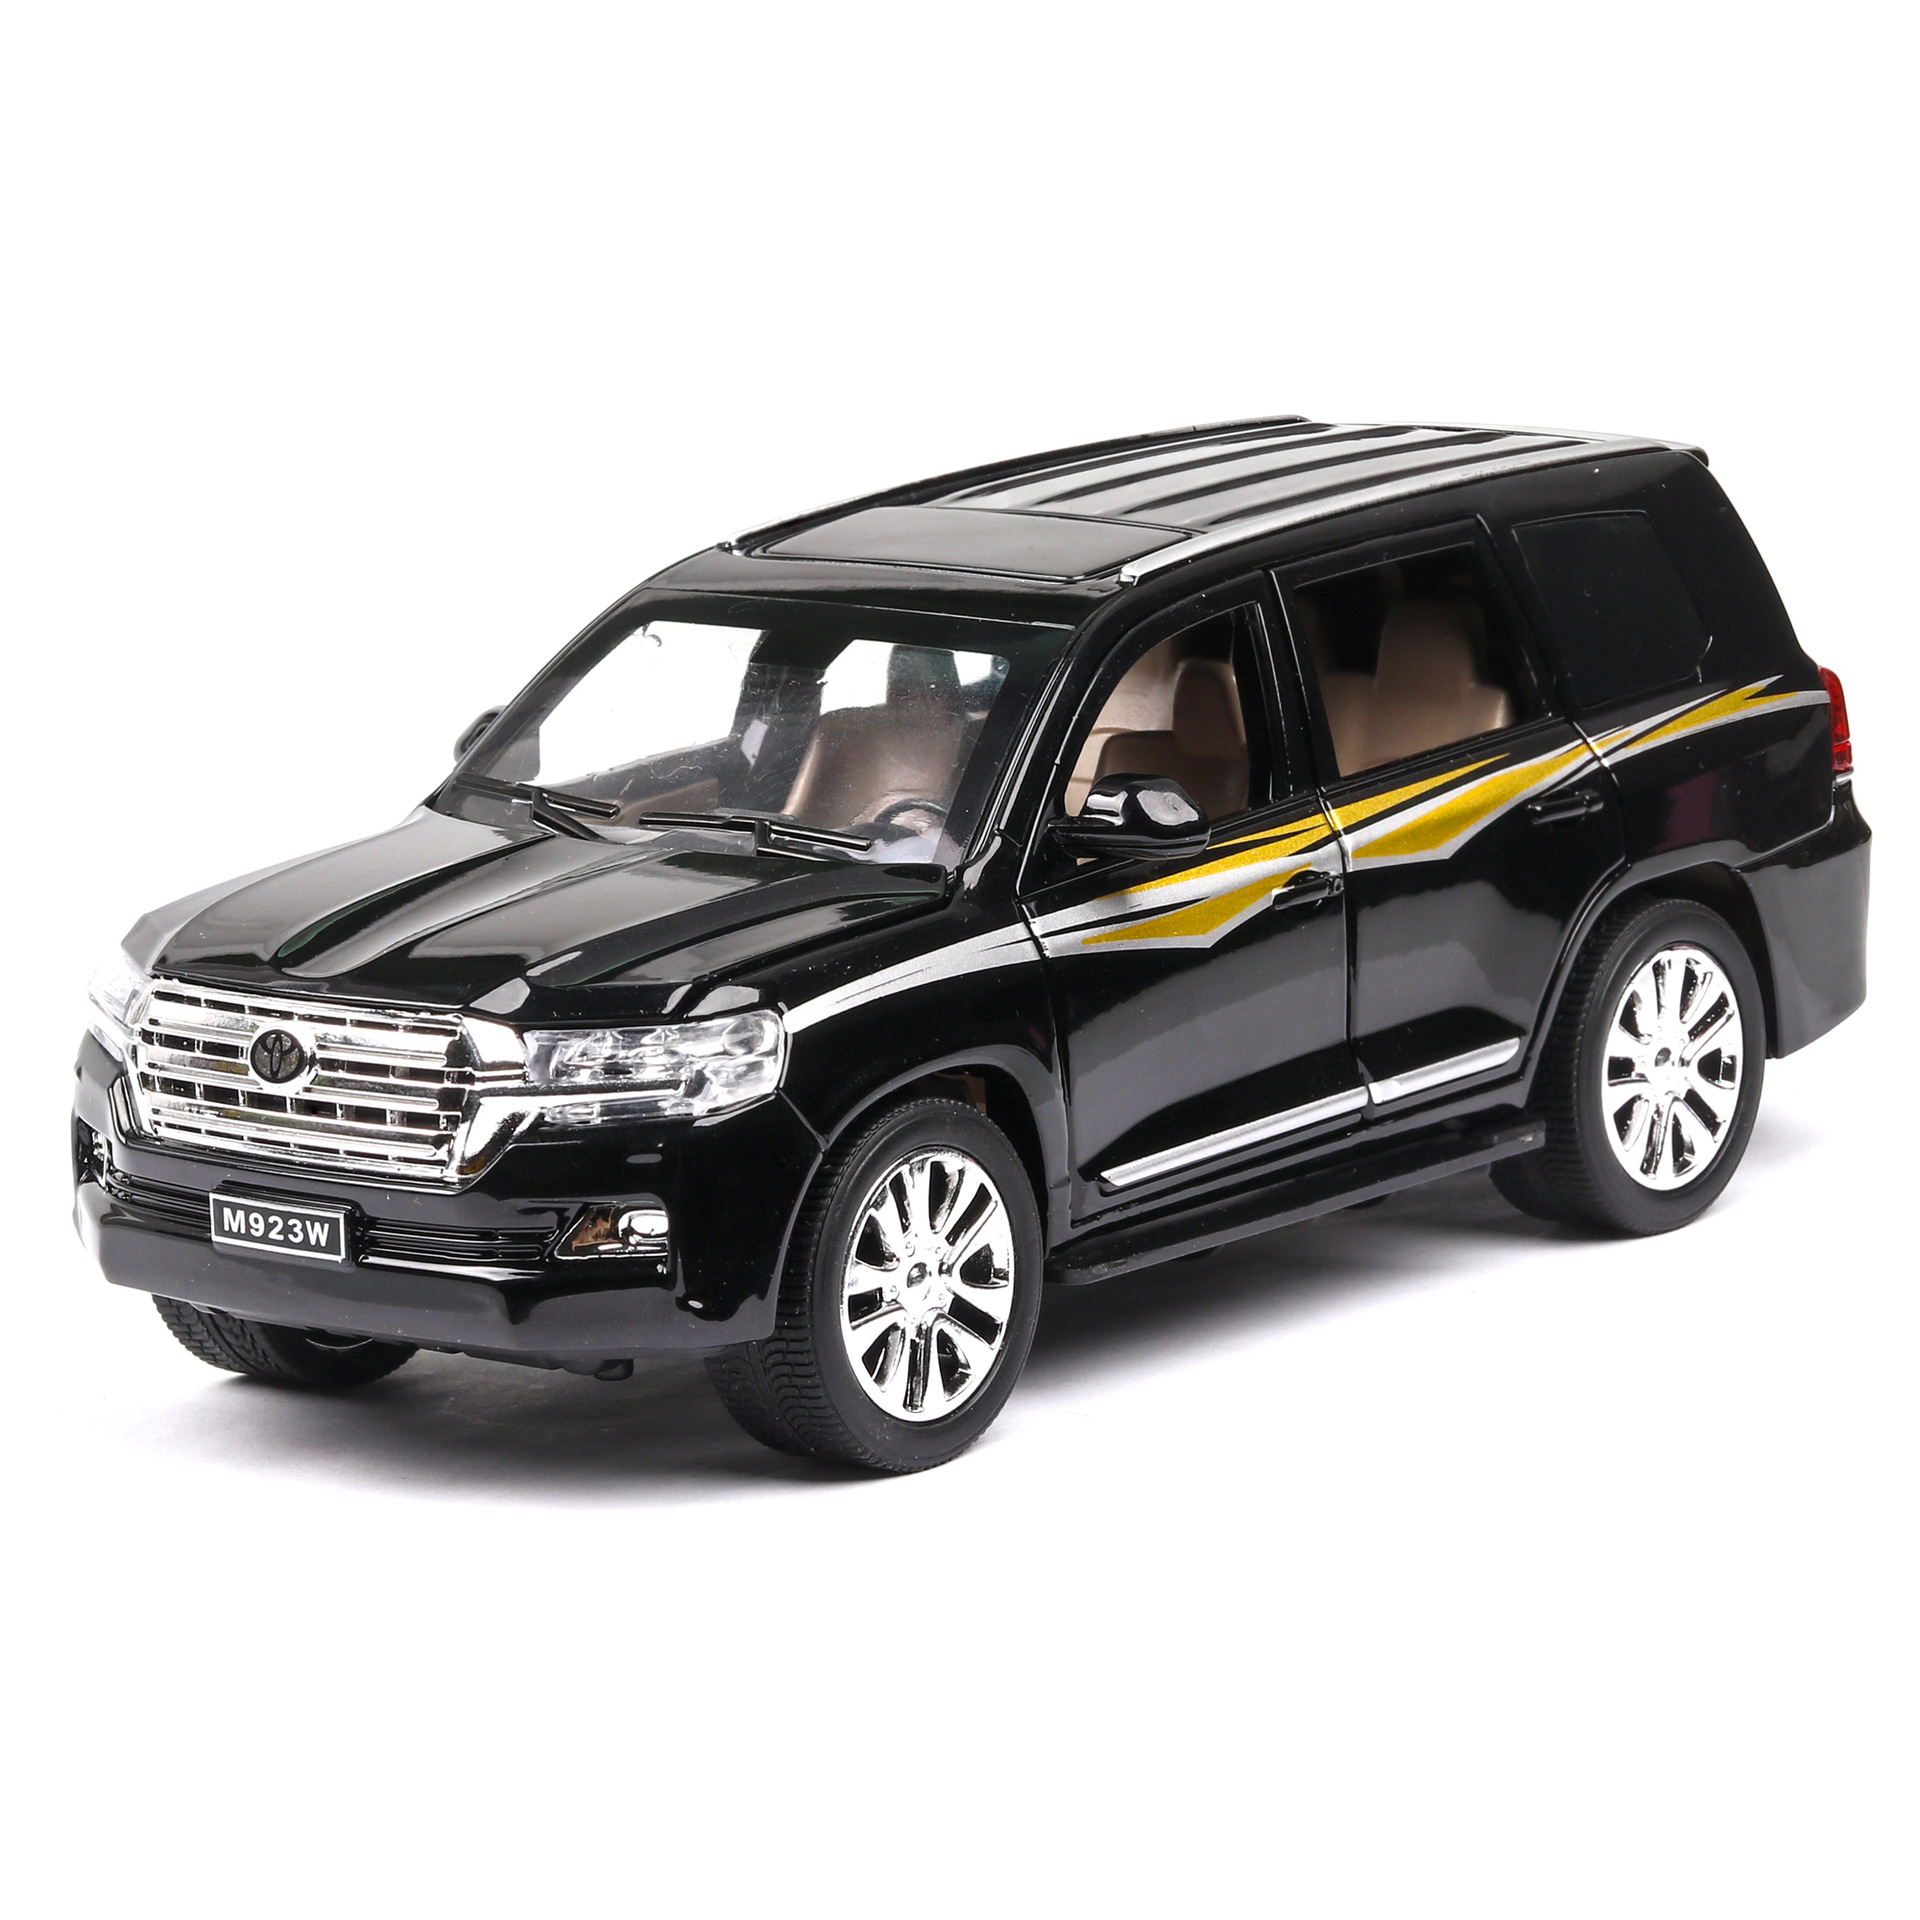 1:24 Toy Car Model Diecast Metal Wheels Land Cruiser SUV Simulation Music Light Pull Back Car Collection Kids Boys Toys Gift